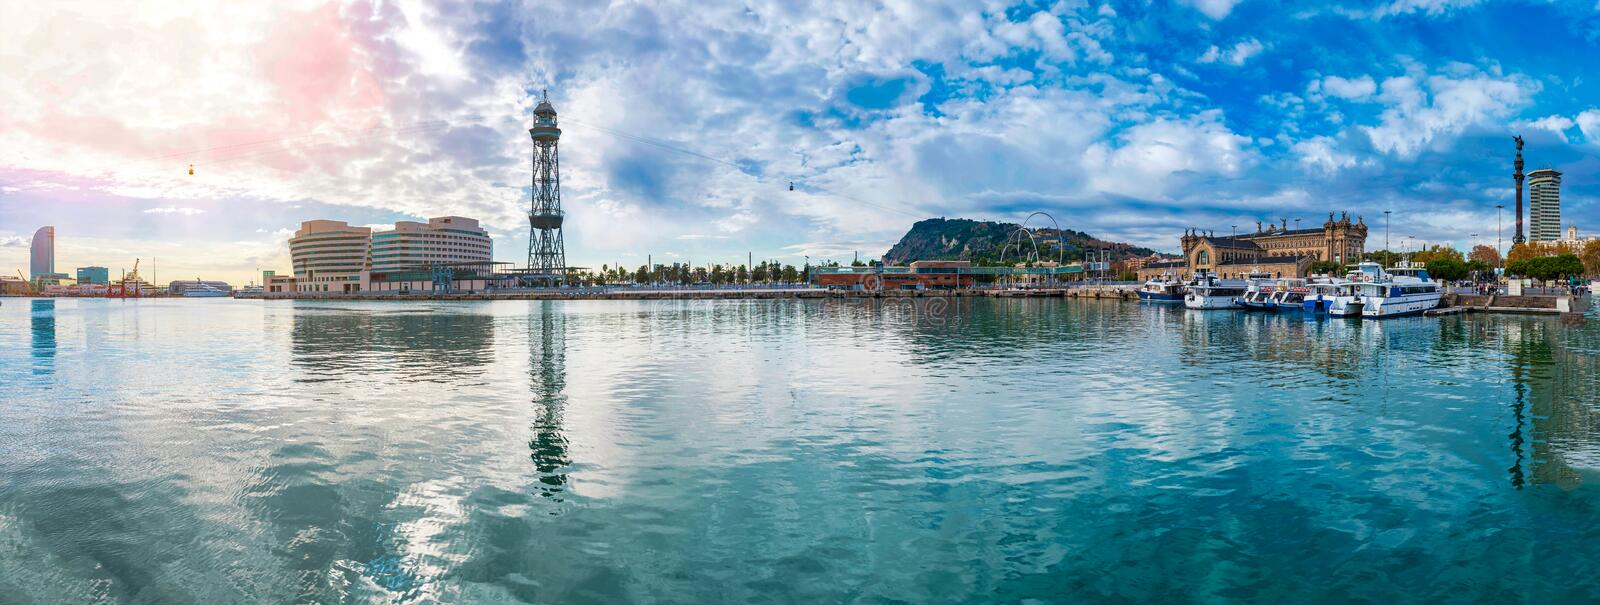 Barcelona Port Vell panorama with overhead cableway to Montjuic stock image